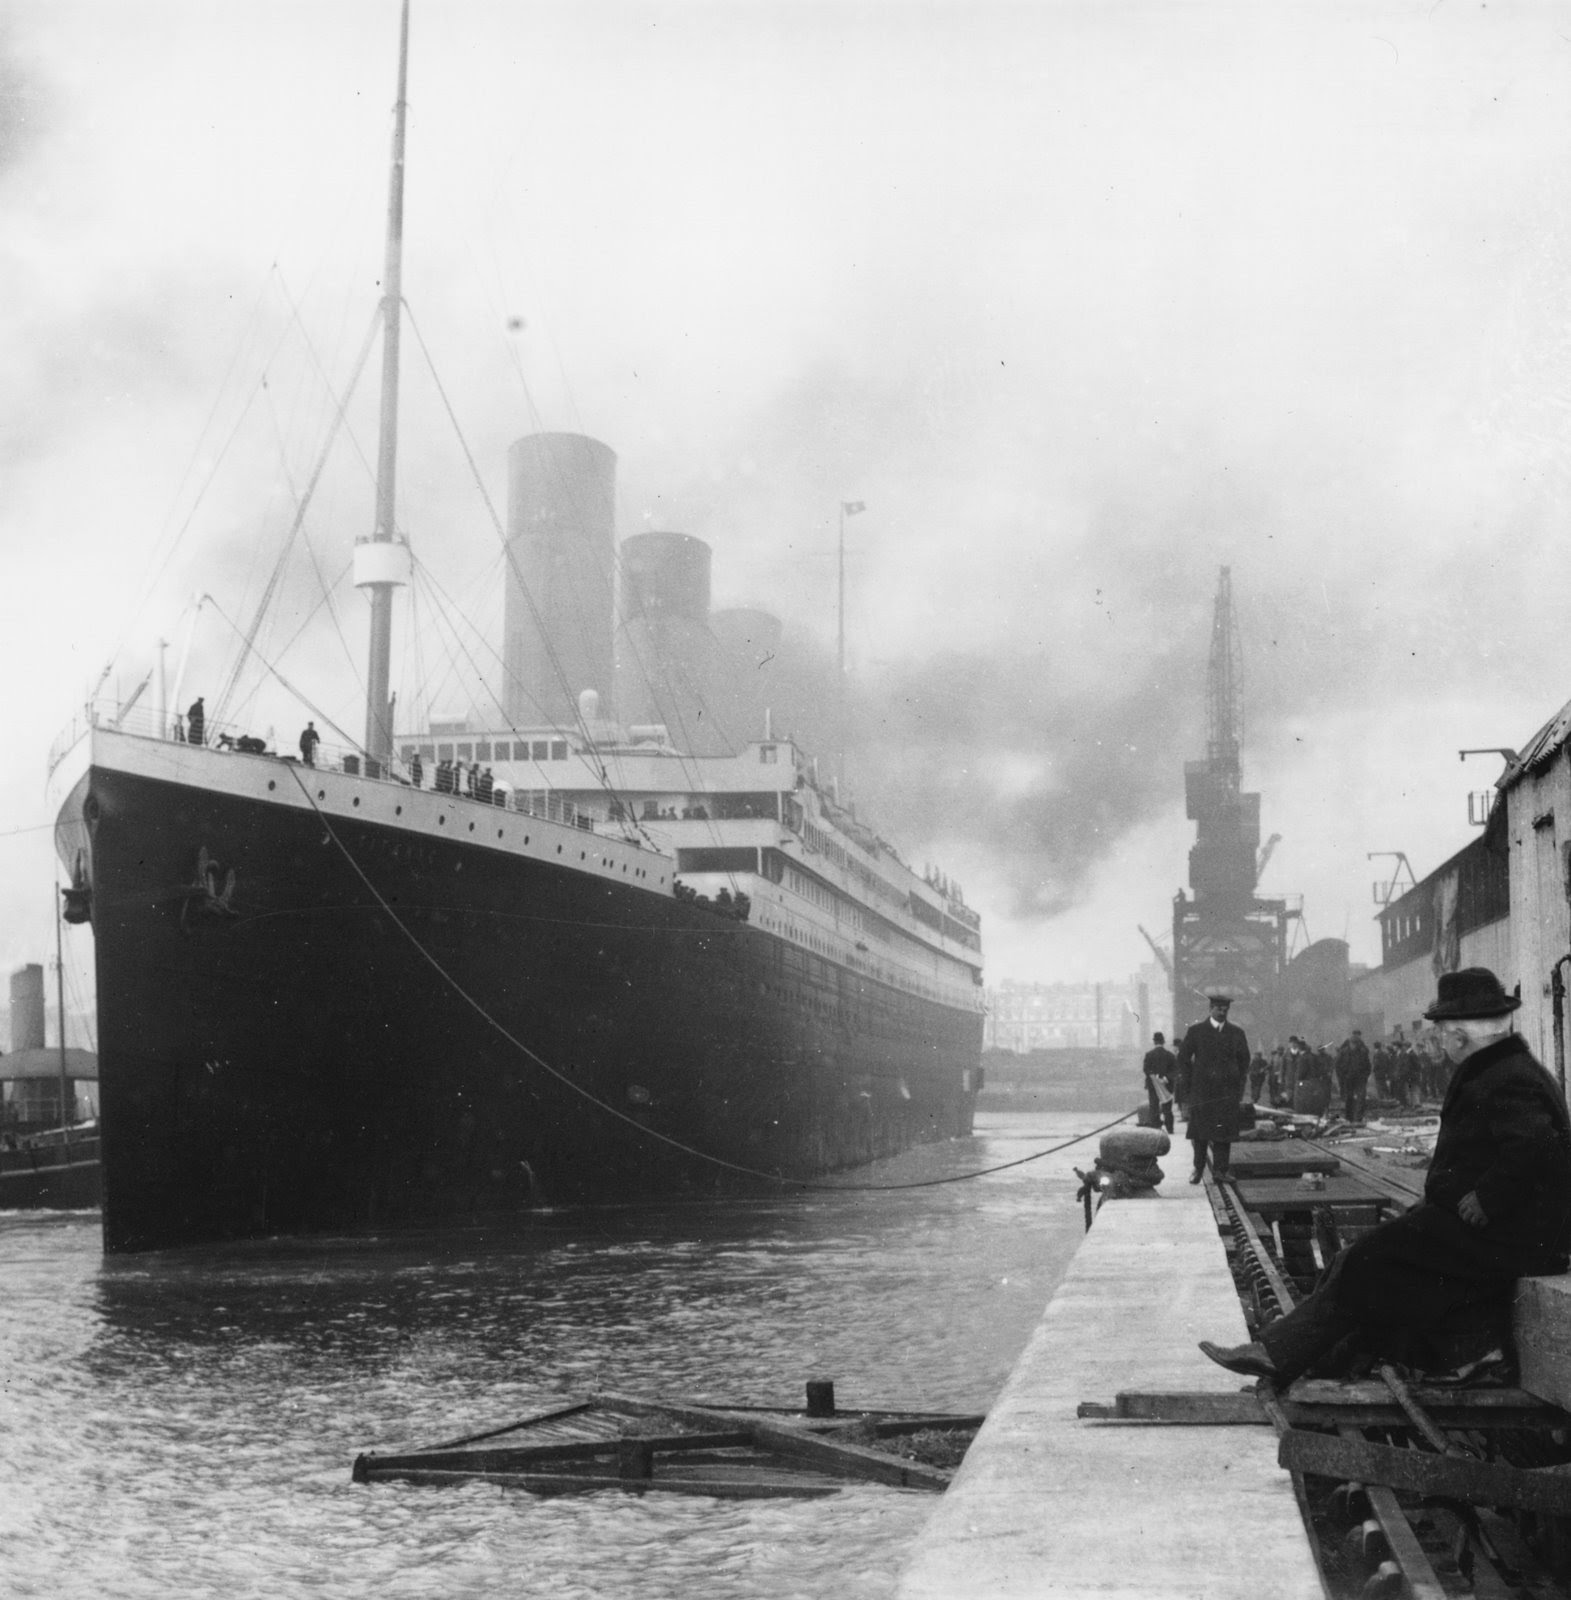 Royal Mail Steamer RMS Titanic